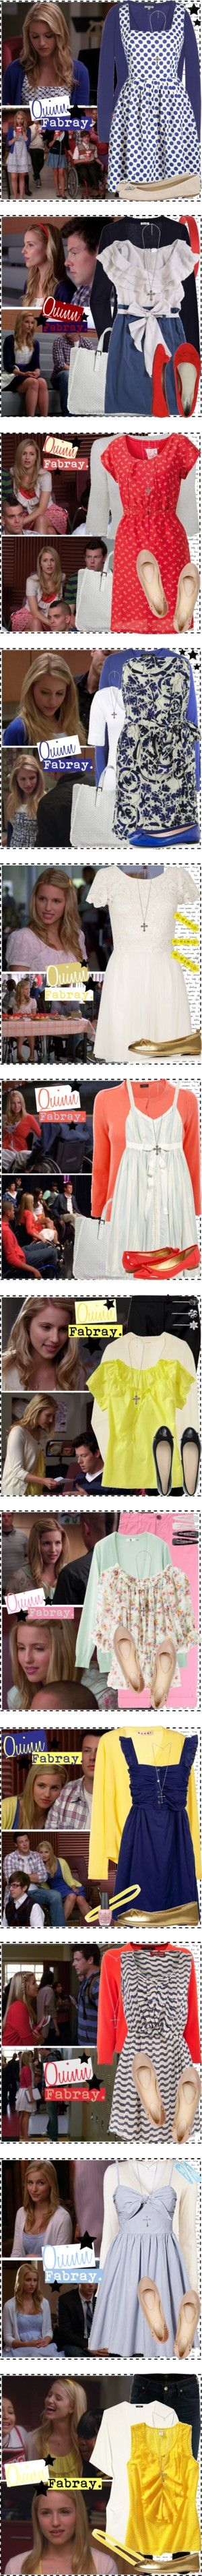 """Quinn Fabray [Glee]."" by silver-screen-style ❤ liked on Polyvore  <3 everything minus the crosses"